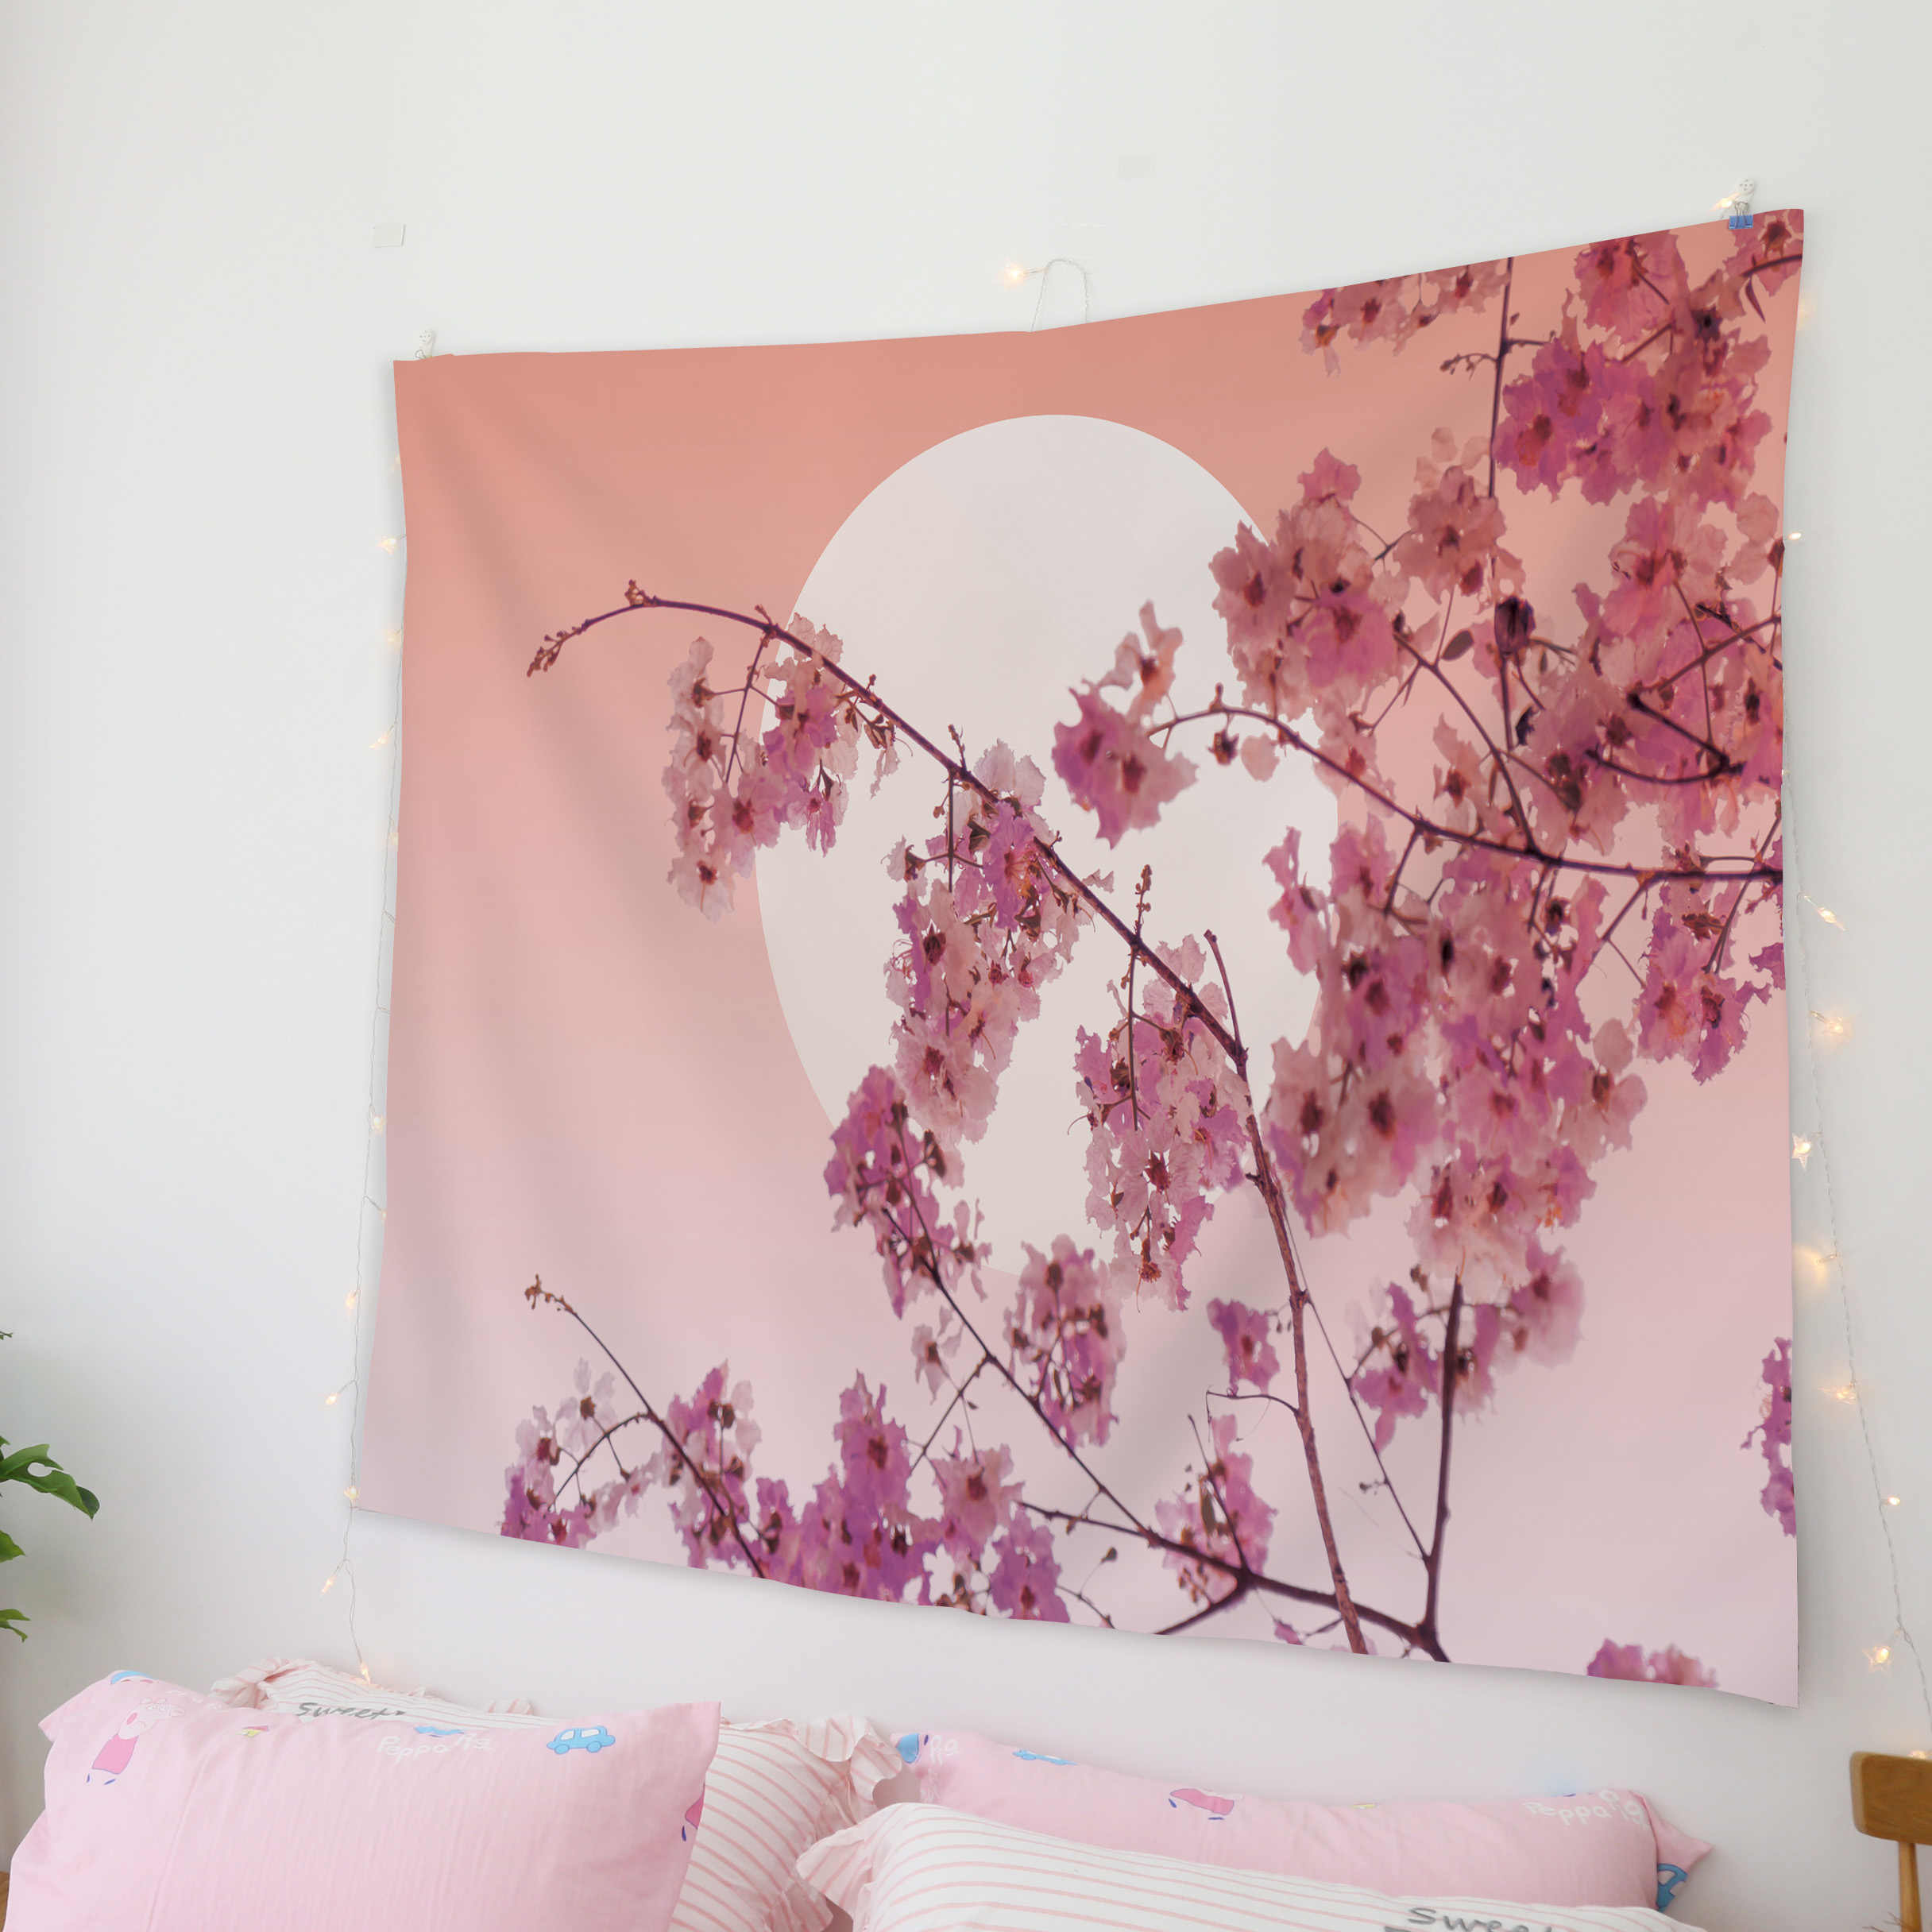 Goohome Japanese Sakura Cherry Blossoms Wall Decor Wall Decor Tapestries Tapestry Wall Art Coverlet Curtain Throw Sheet Fast Dry